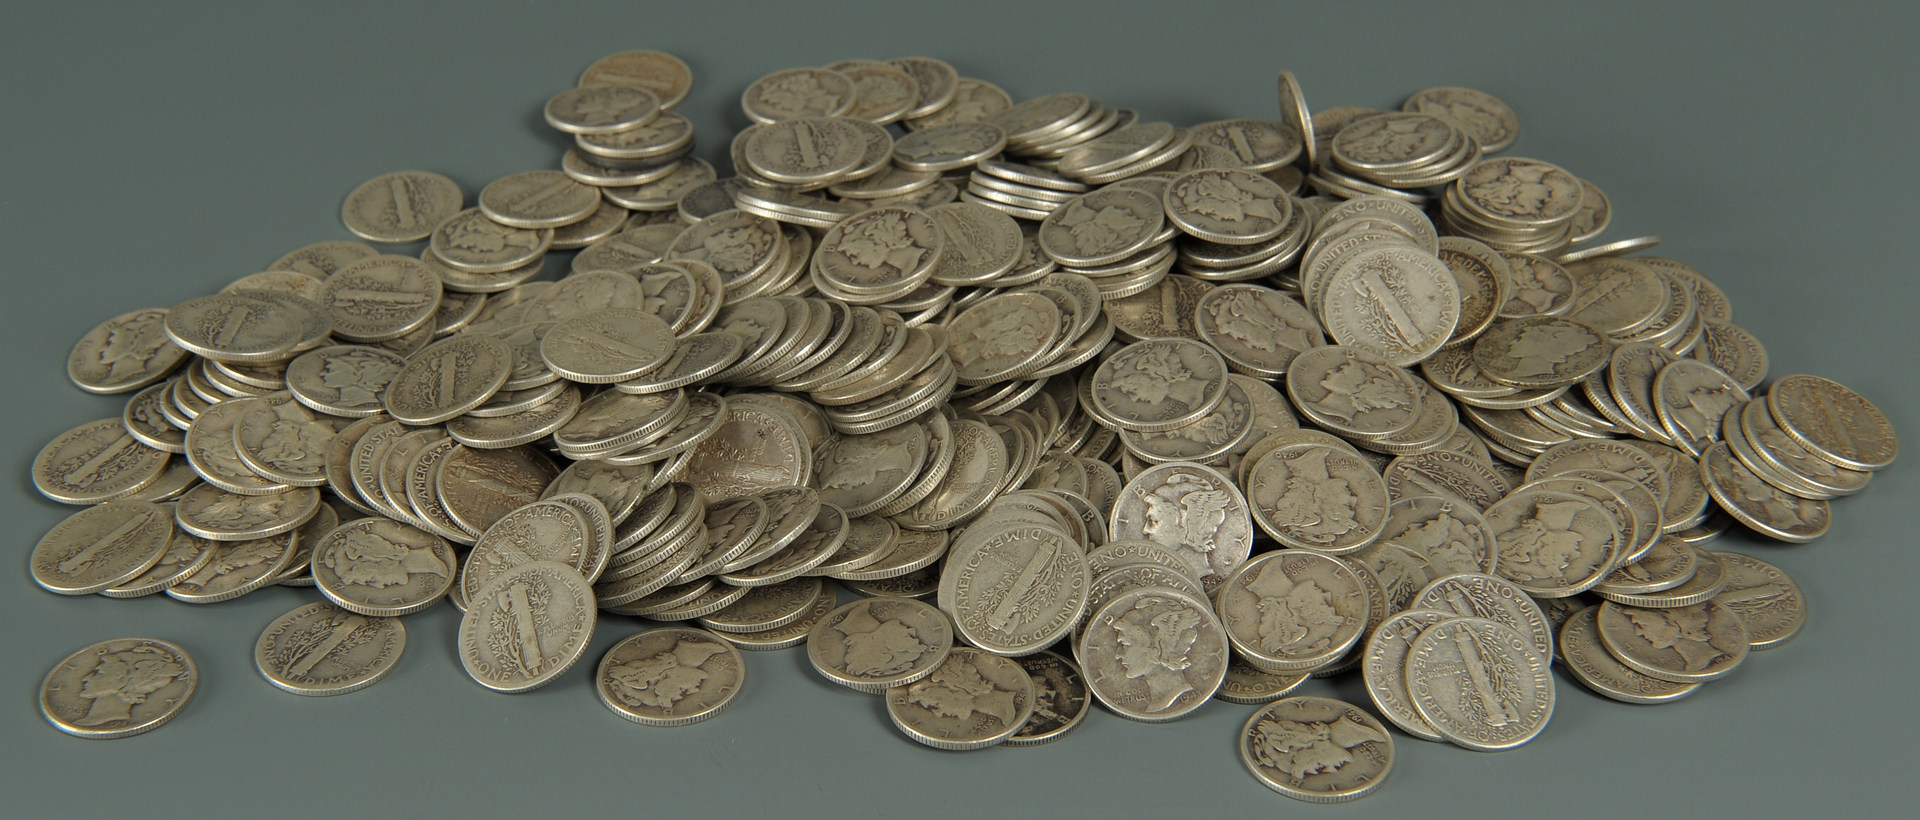 Lot 548: Grouping of U.S. Mercury Dimes